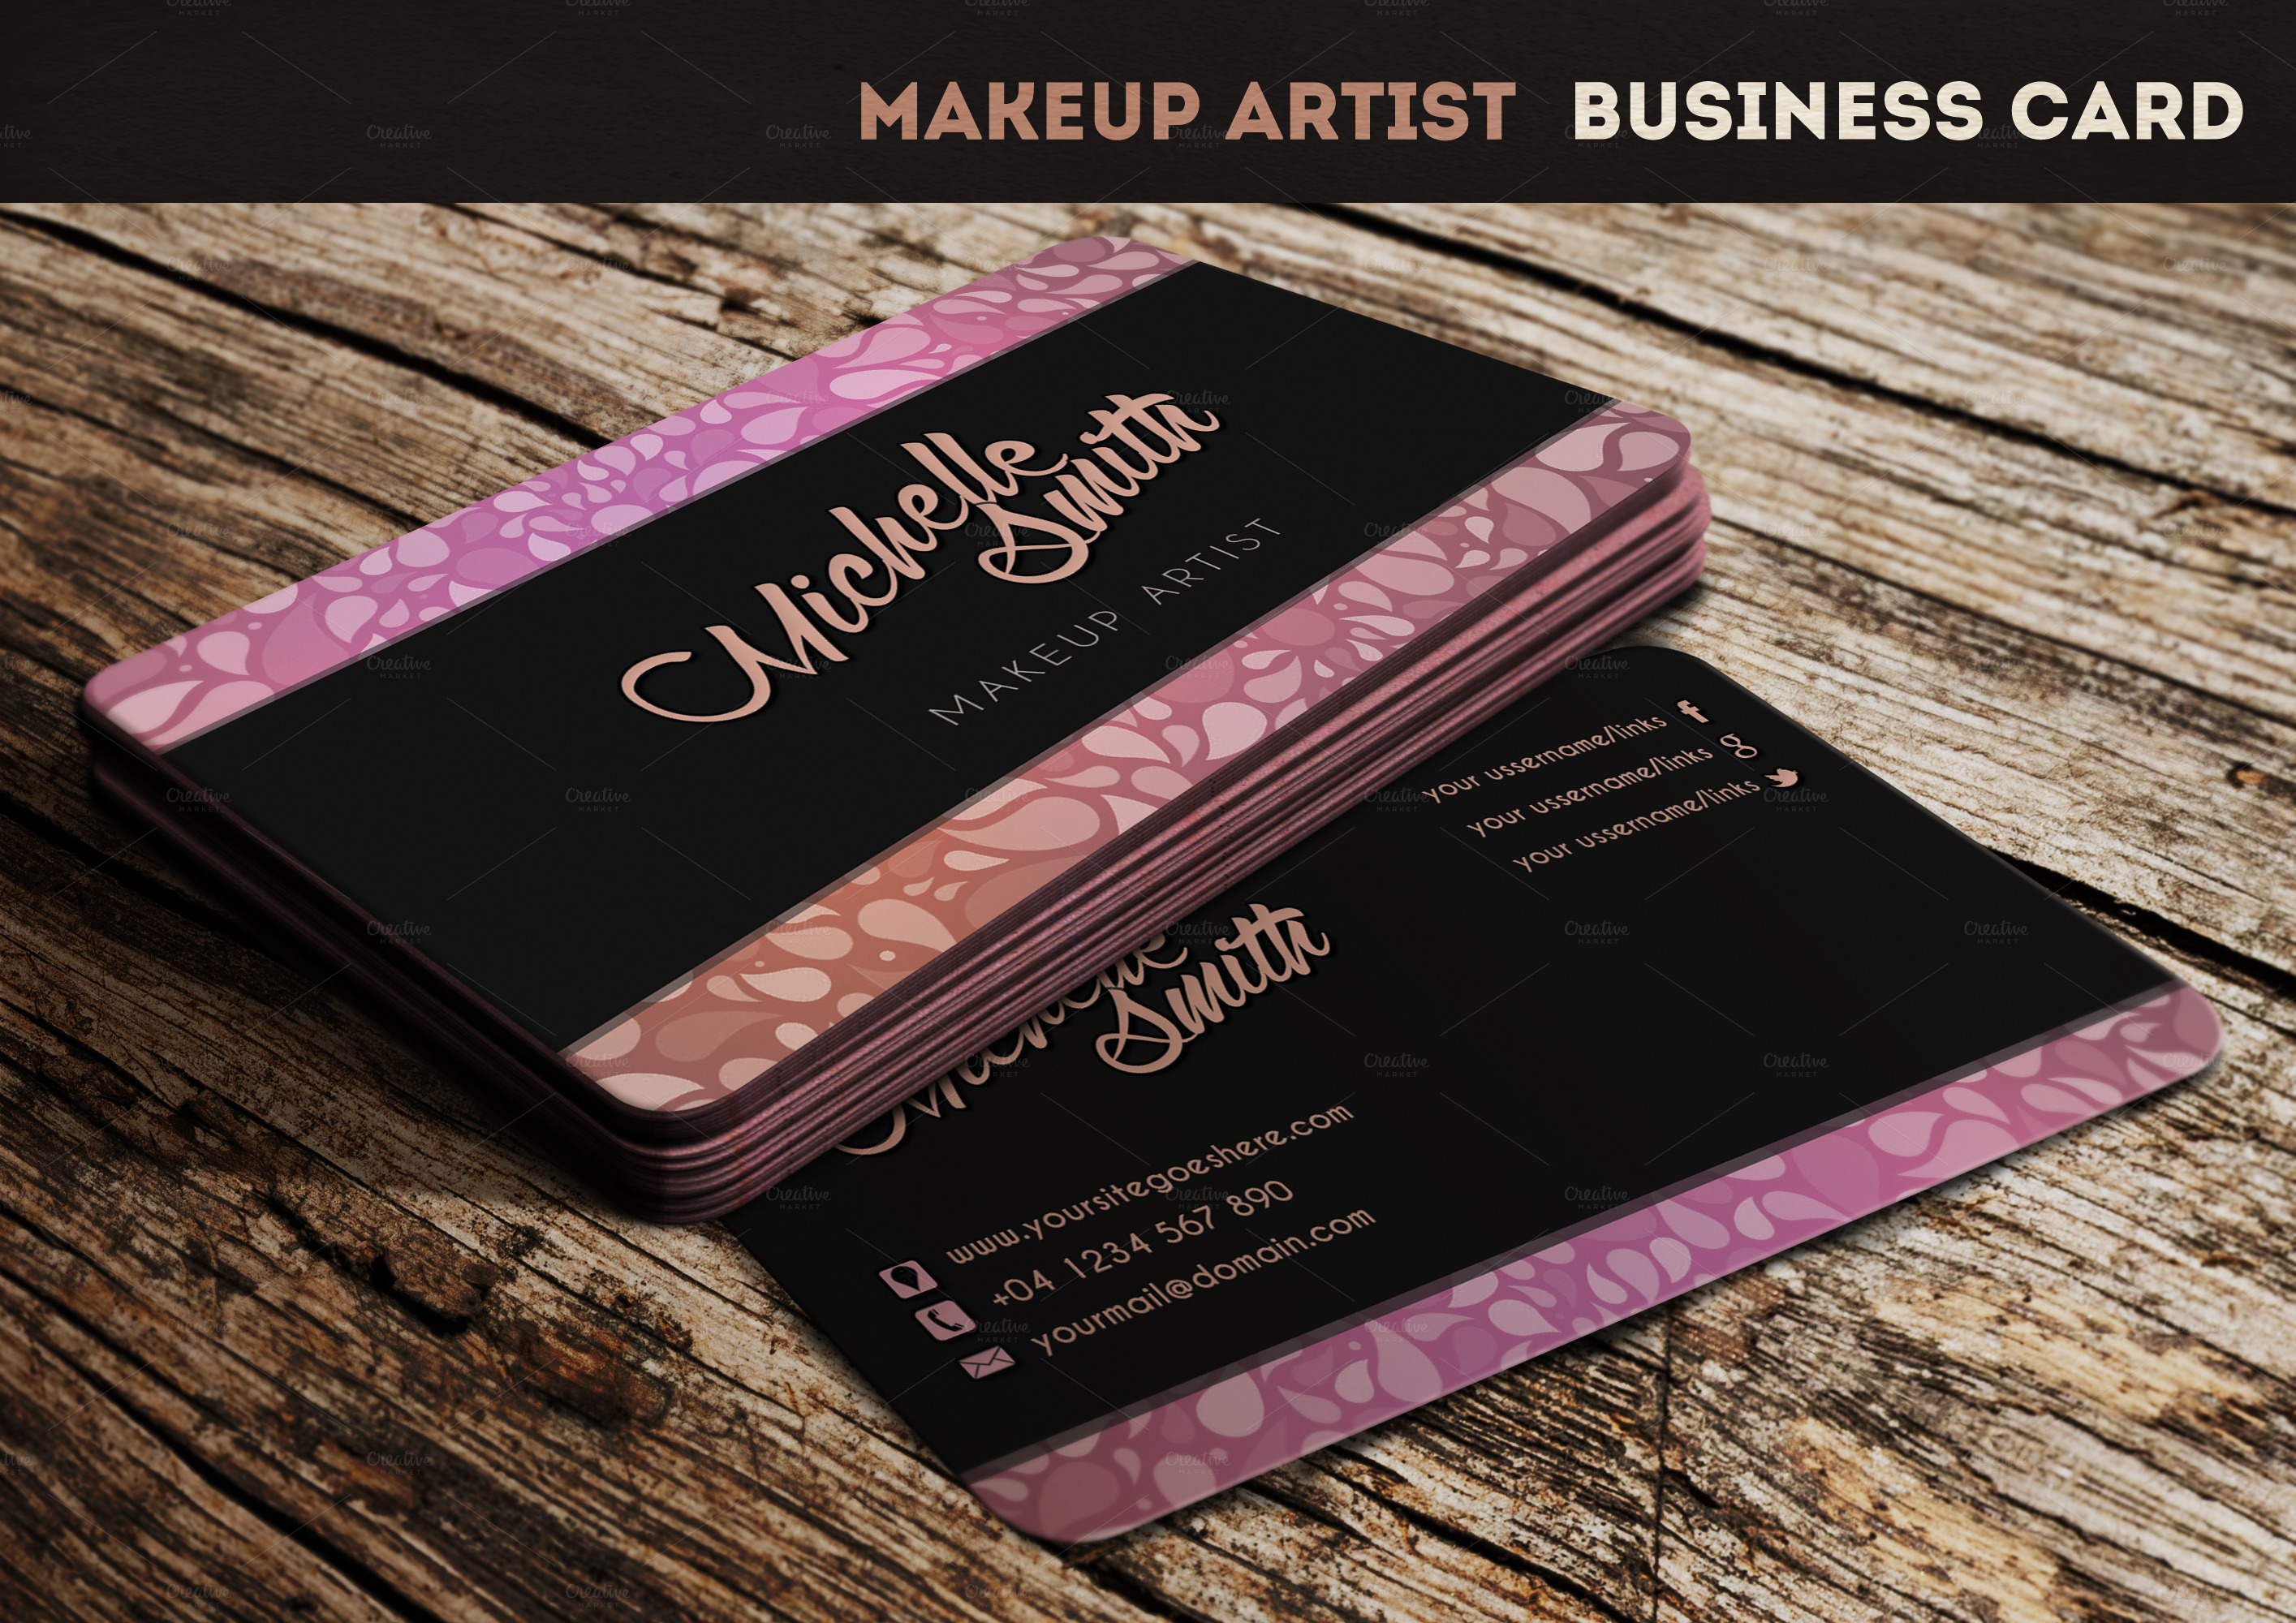 Makeup artist business cards templates business card sample makeup artist business cards templates fbccfo Choice Image